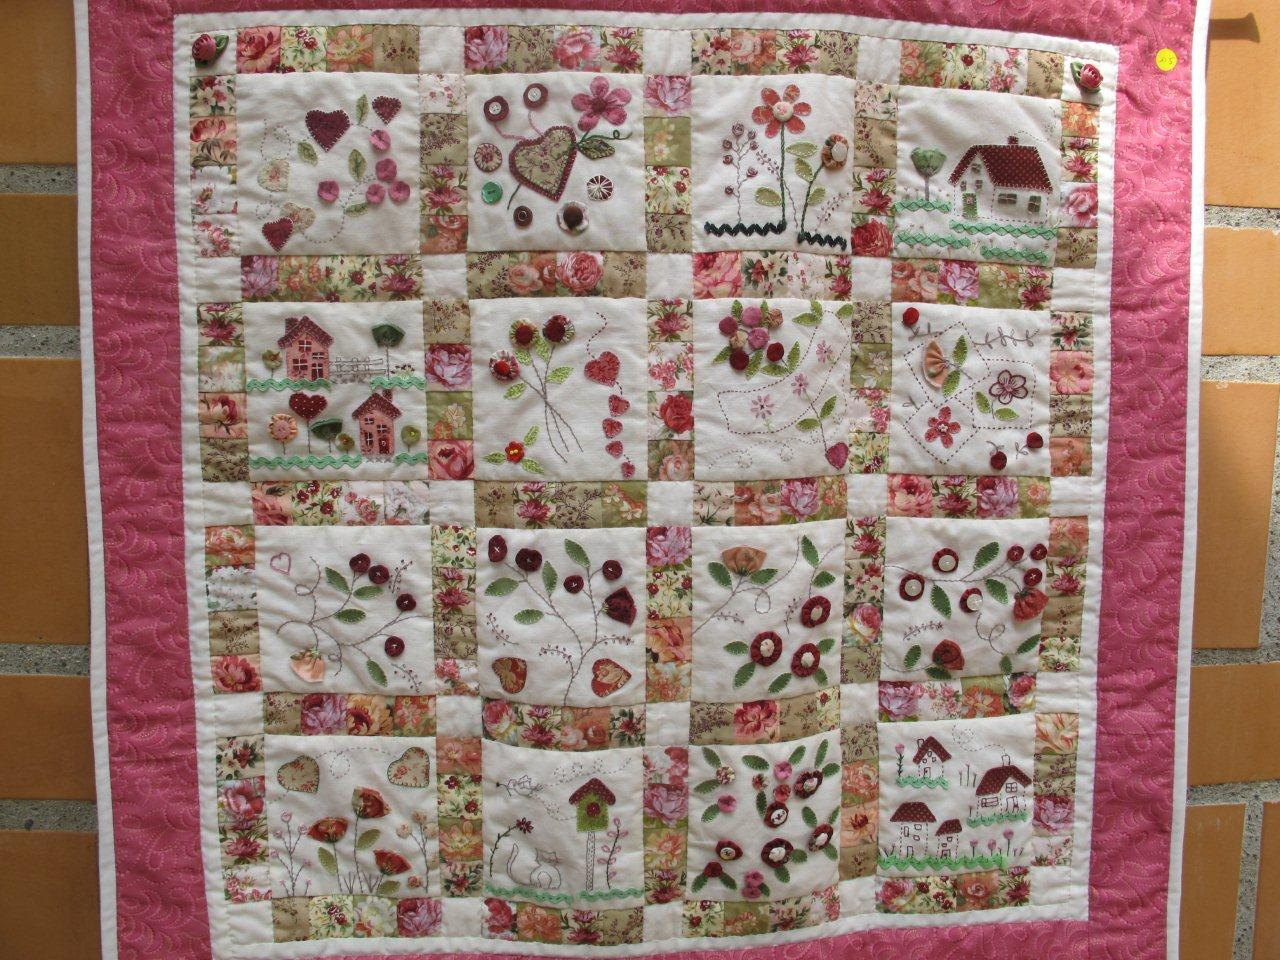 Expo patch 6